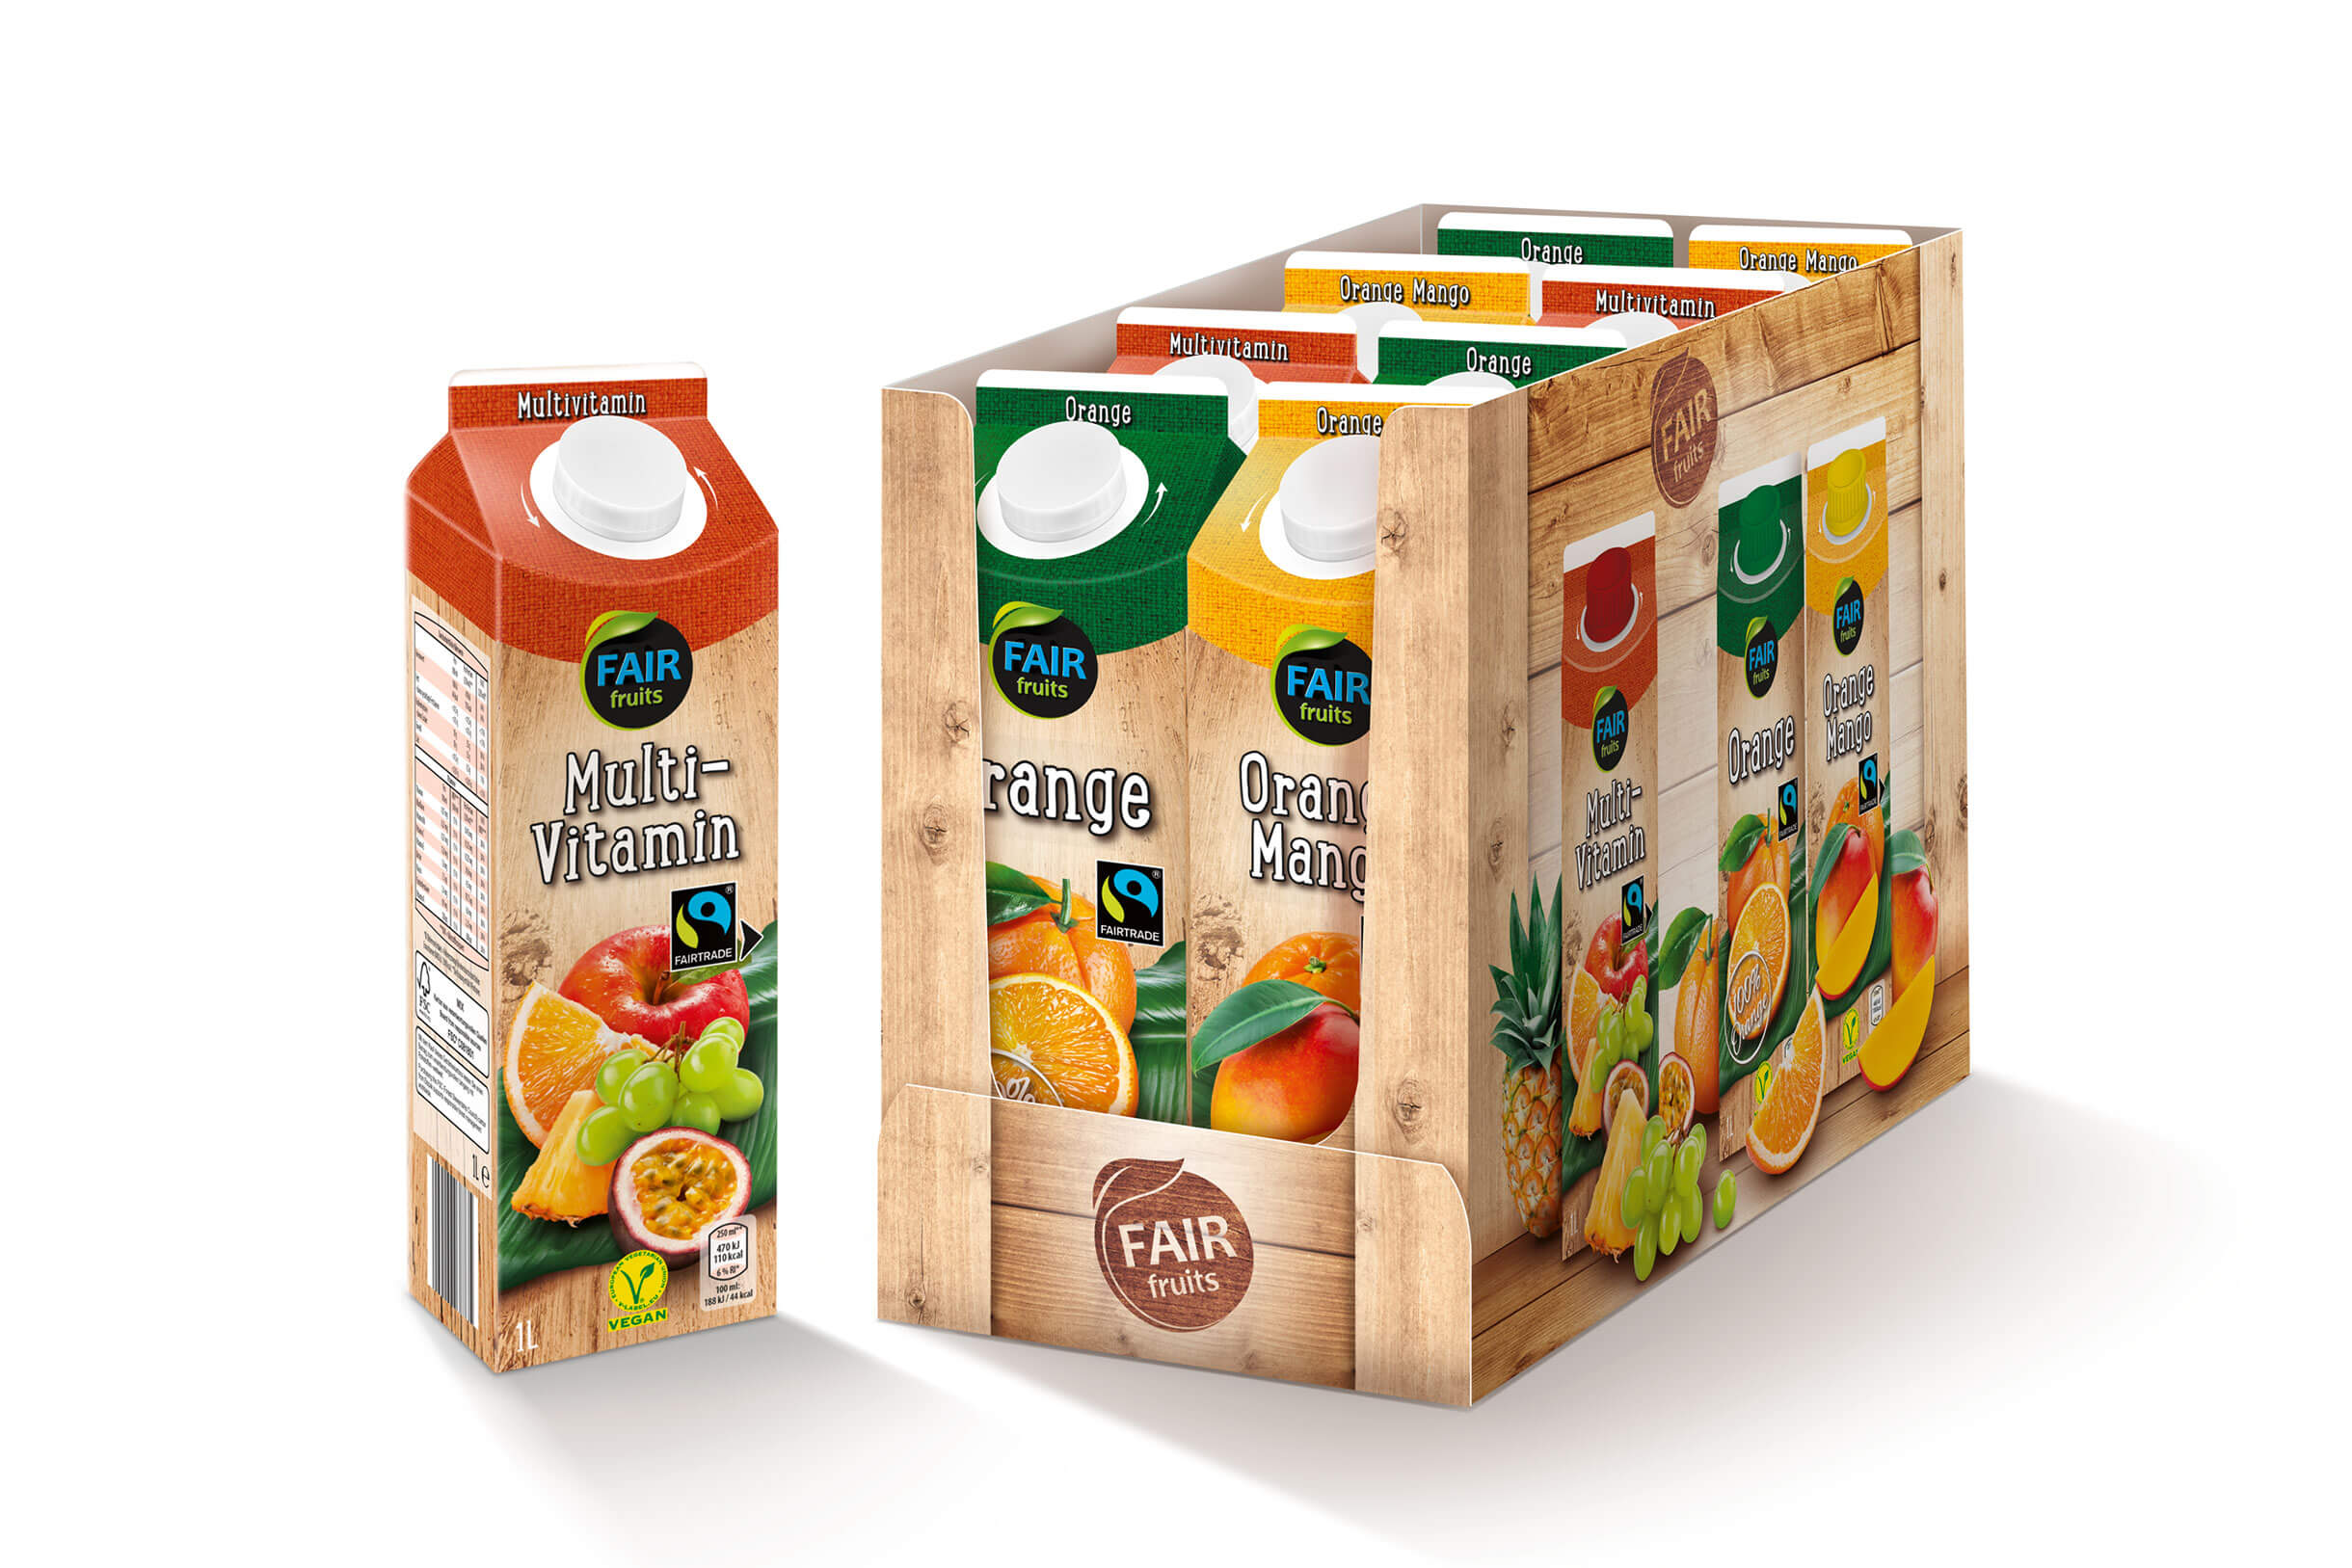 hofer saefte fair fruits tray 3 sorten multivitamin orange orange mango design packaging rubicon